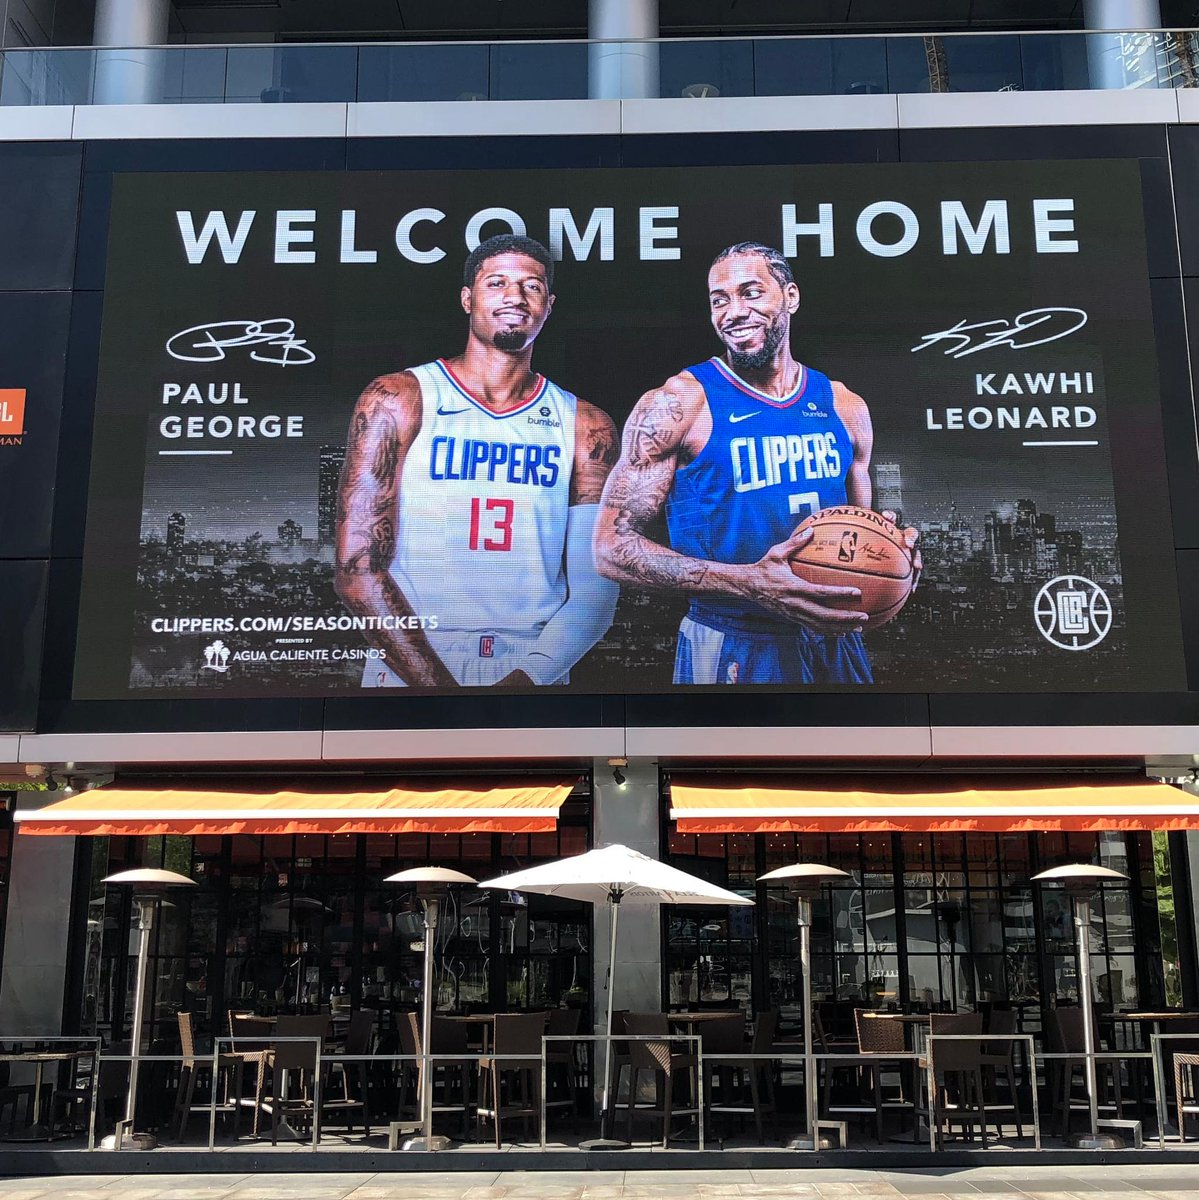 The Clippers welcome PG and Kawhi home on billboards across from Staples Center.